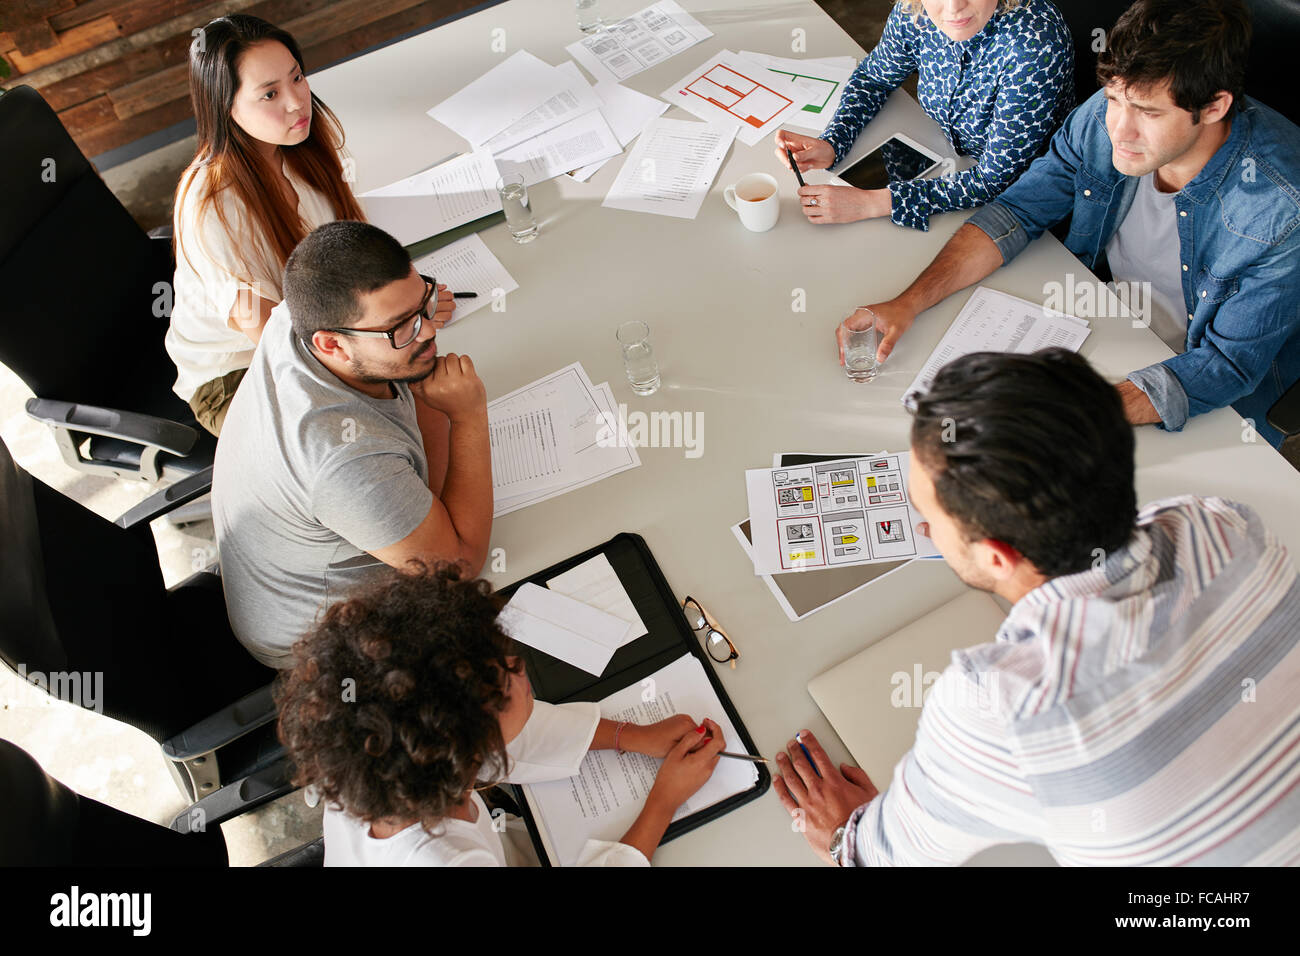 High angle view of creative team sitting around table discussing business ideas. Mixed race team of creative professionals - Stock Image